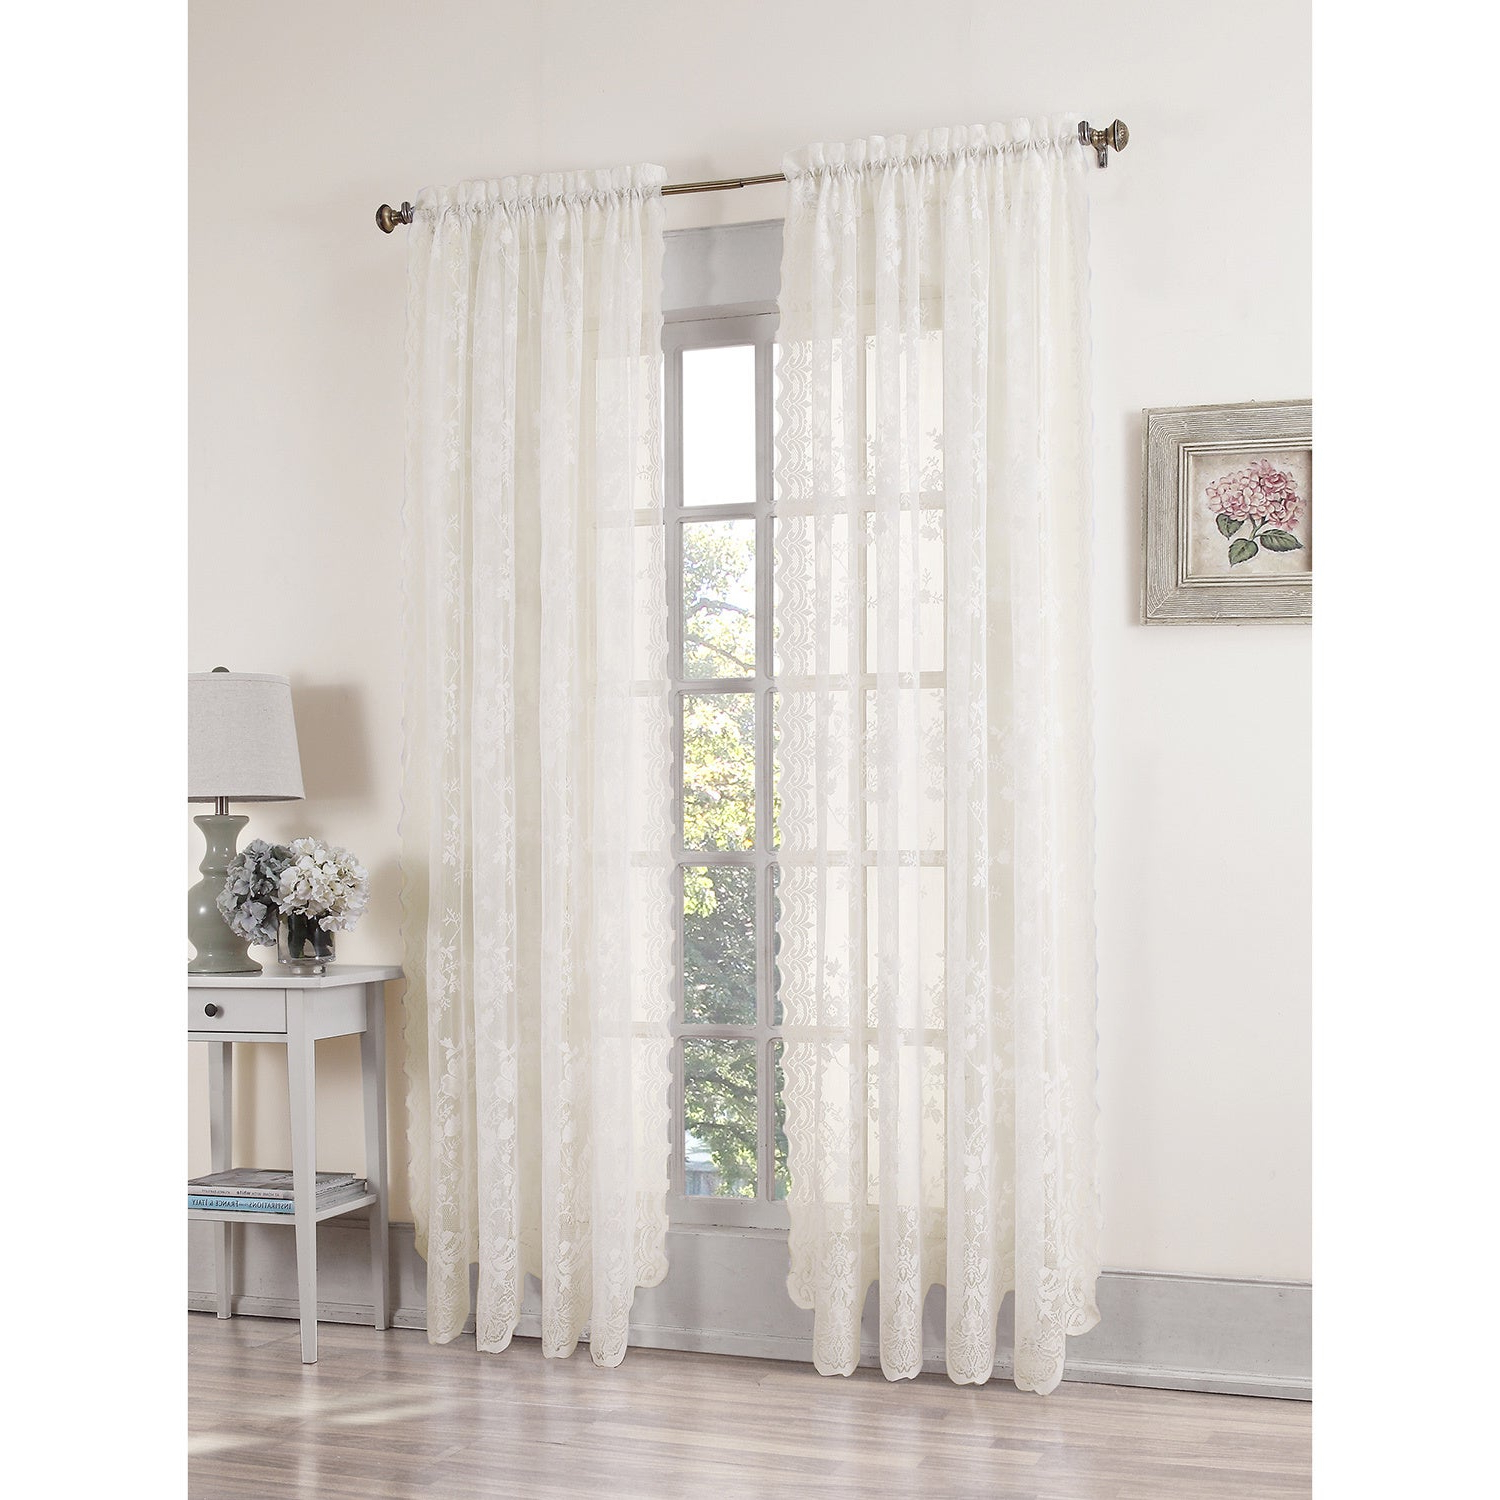 Overstock Shopping – The Best Deals On Curtains (View 10 of 20)